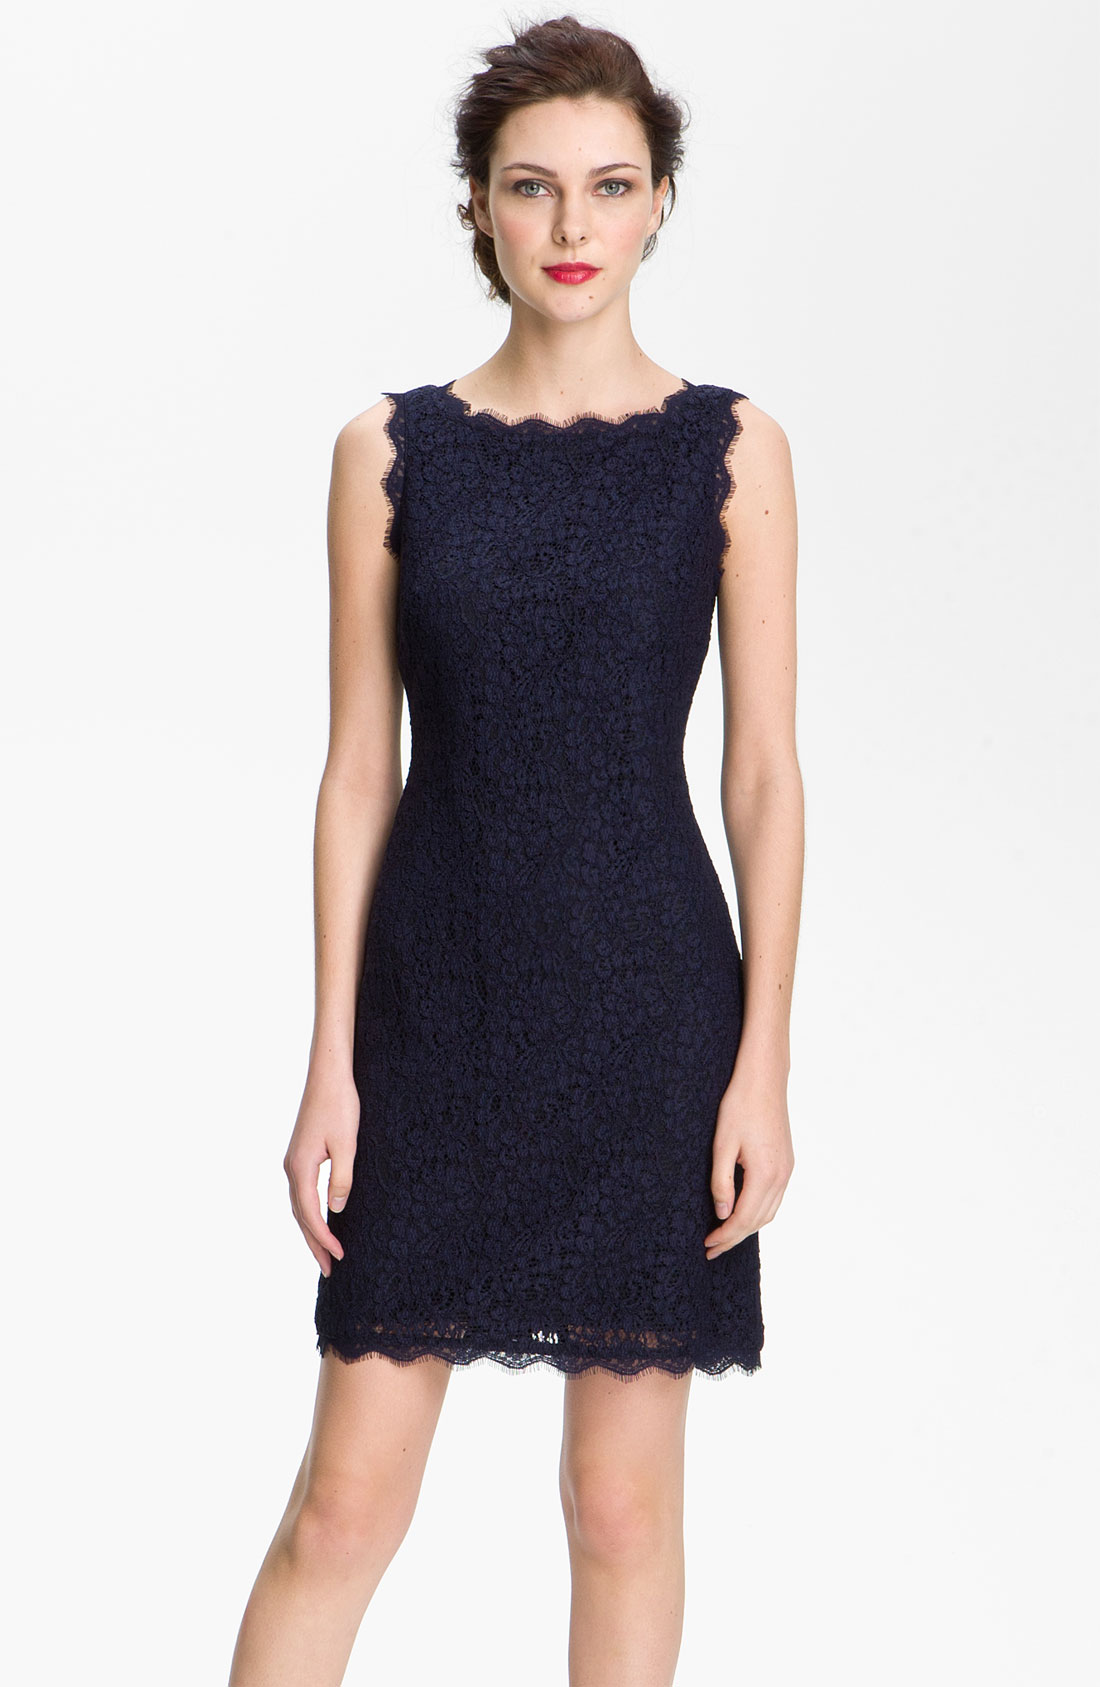 nordstrom dresses for wedding guest photo - 1